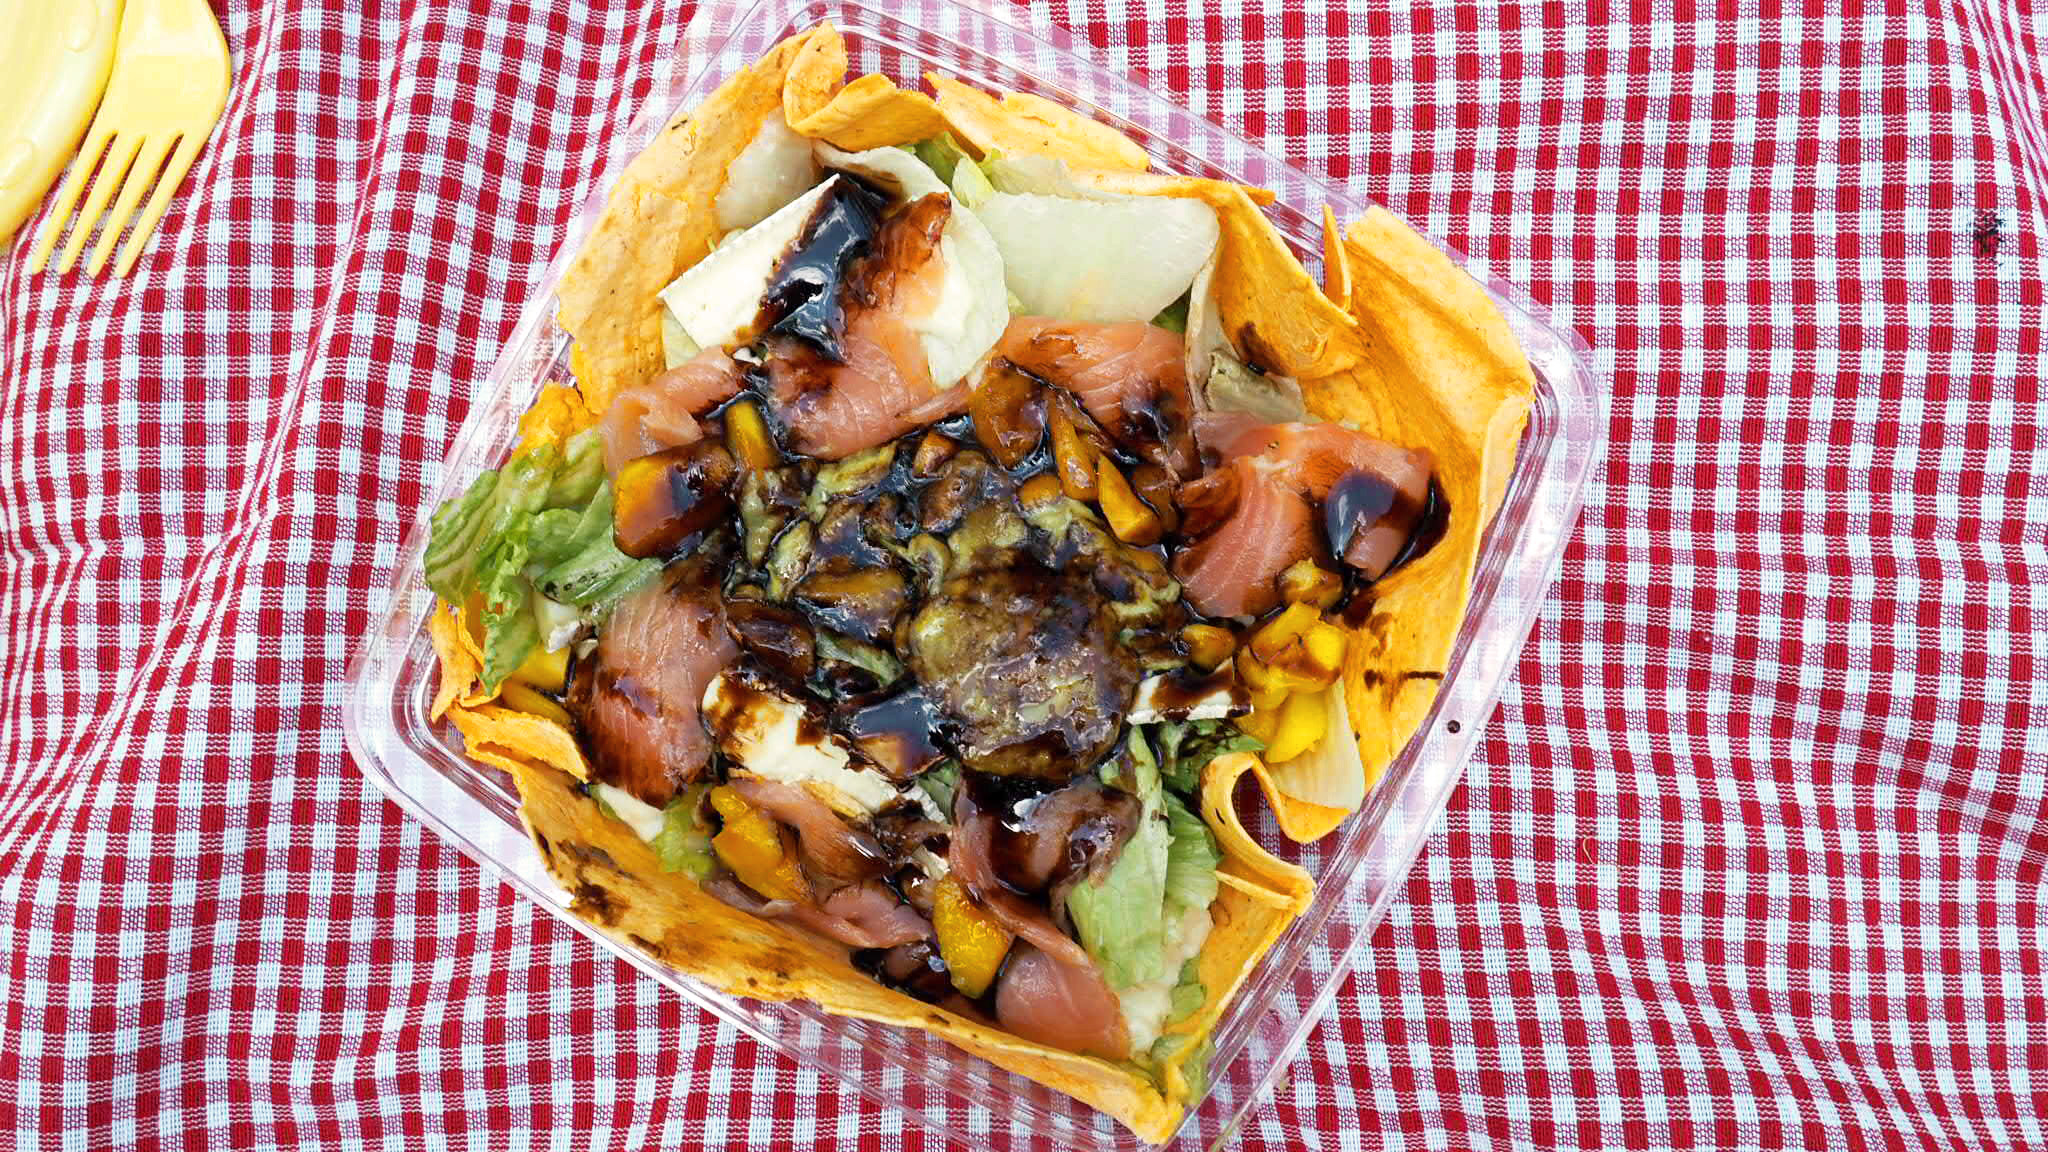 Ensalada de Juicy Avenue - Picnic en Madrid